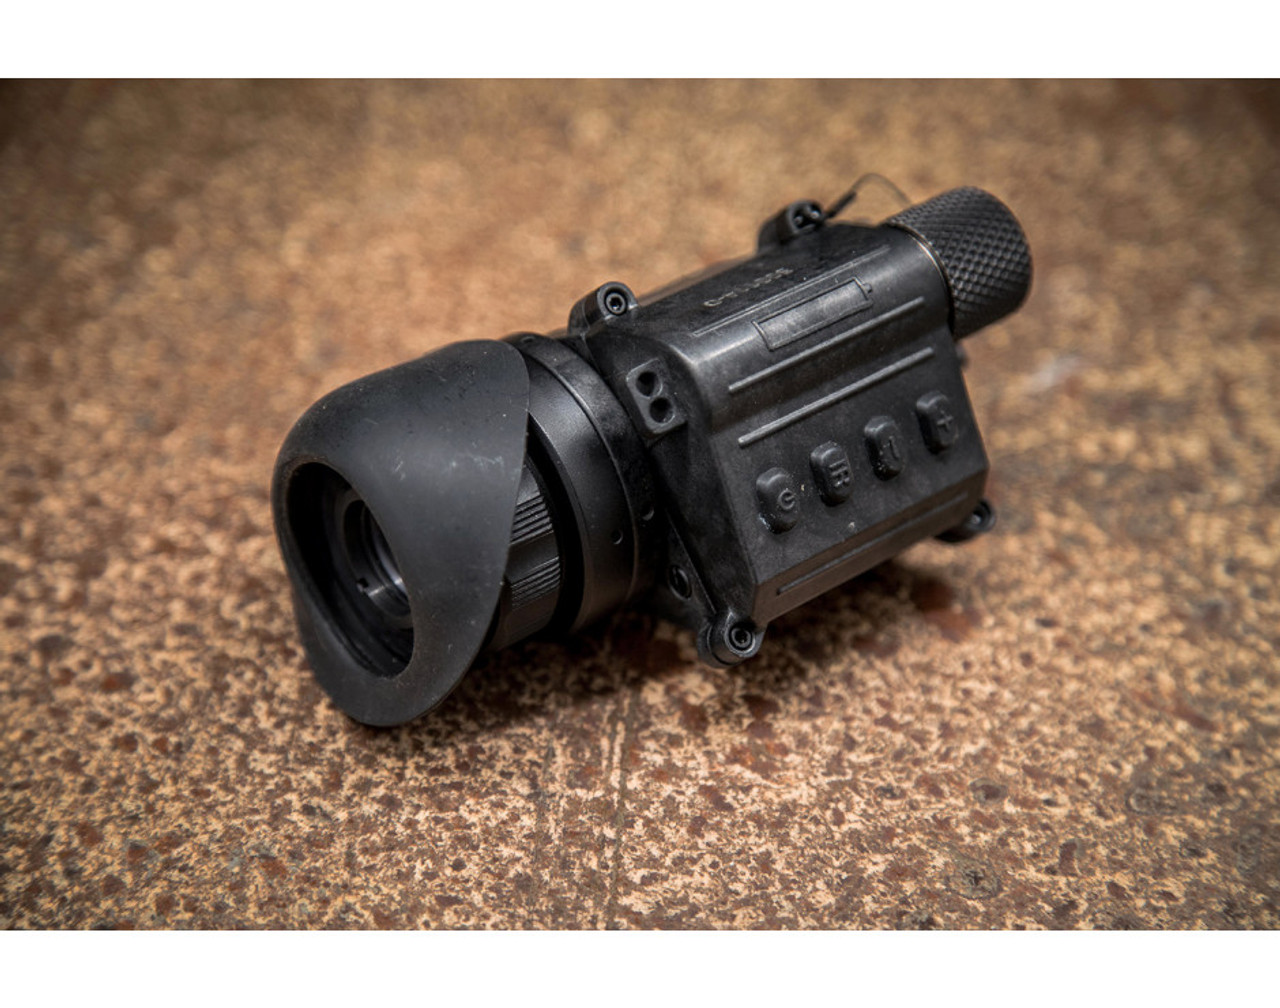 "AGM PVS14-OMEGA 3AL1 Light Weight Night Vision Monocular 51 degree FOV Gen 3+ Auto-Gated ""Level 1"". Made in USA (AGM PVS14-OMEGA 3AL1)"